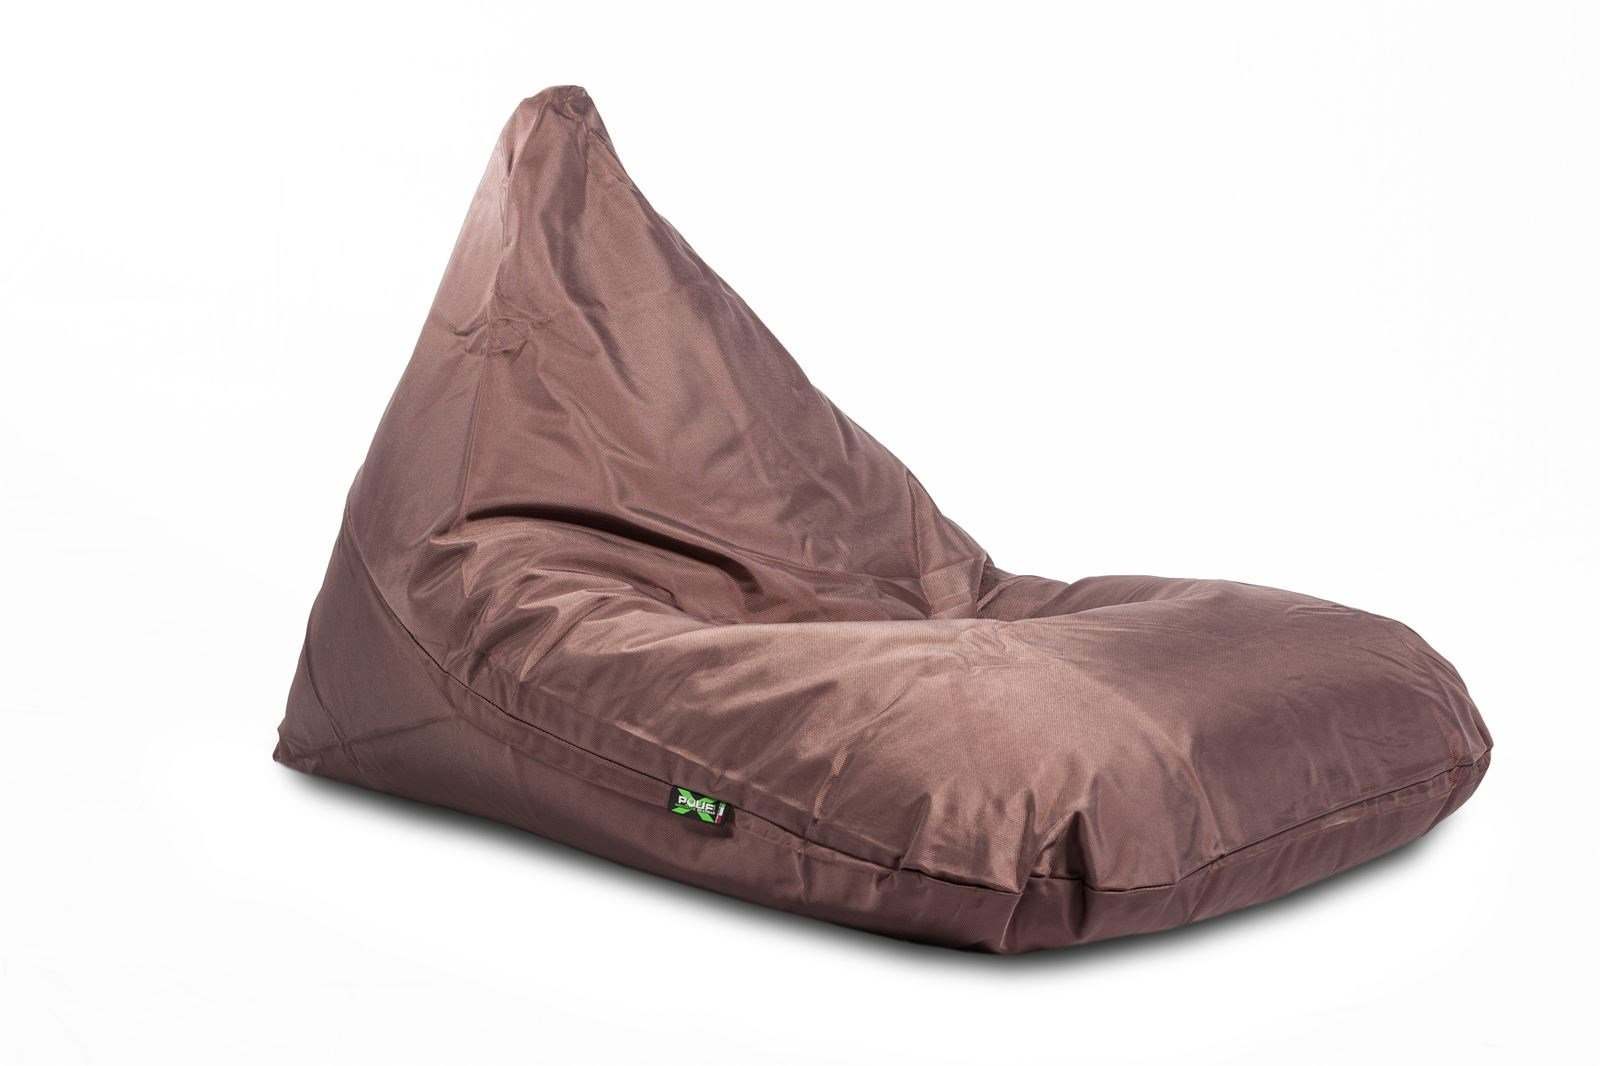 Home Trends And Design Retailers Polyester Bean Bag X Triangle By Xpouf